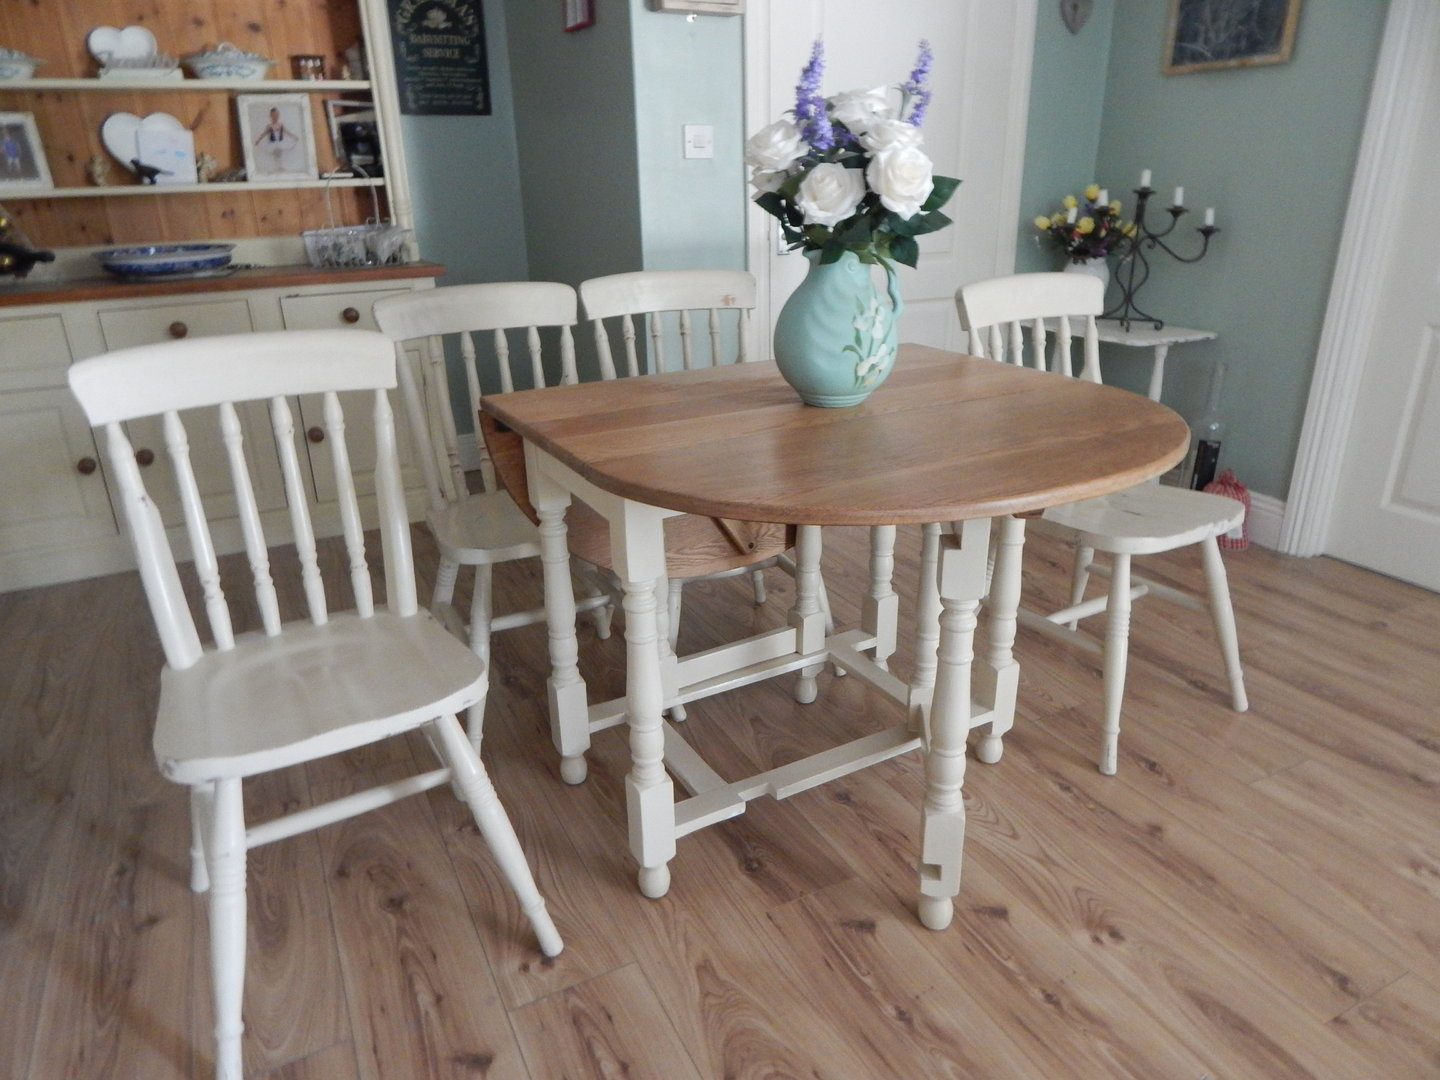 Shabby Chic Gate Leg Dining Table & 4 Chairs , Vintage